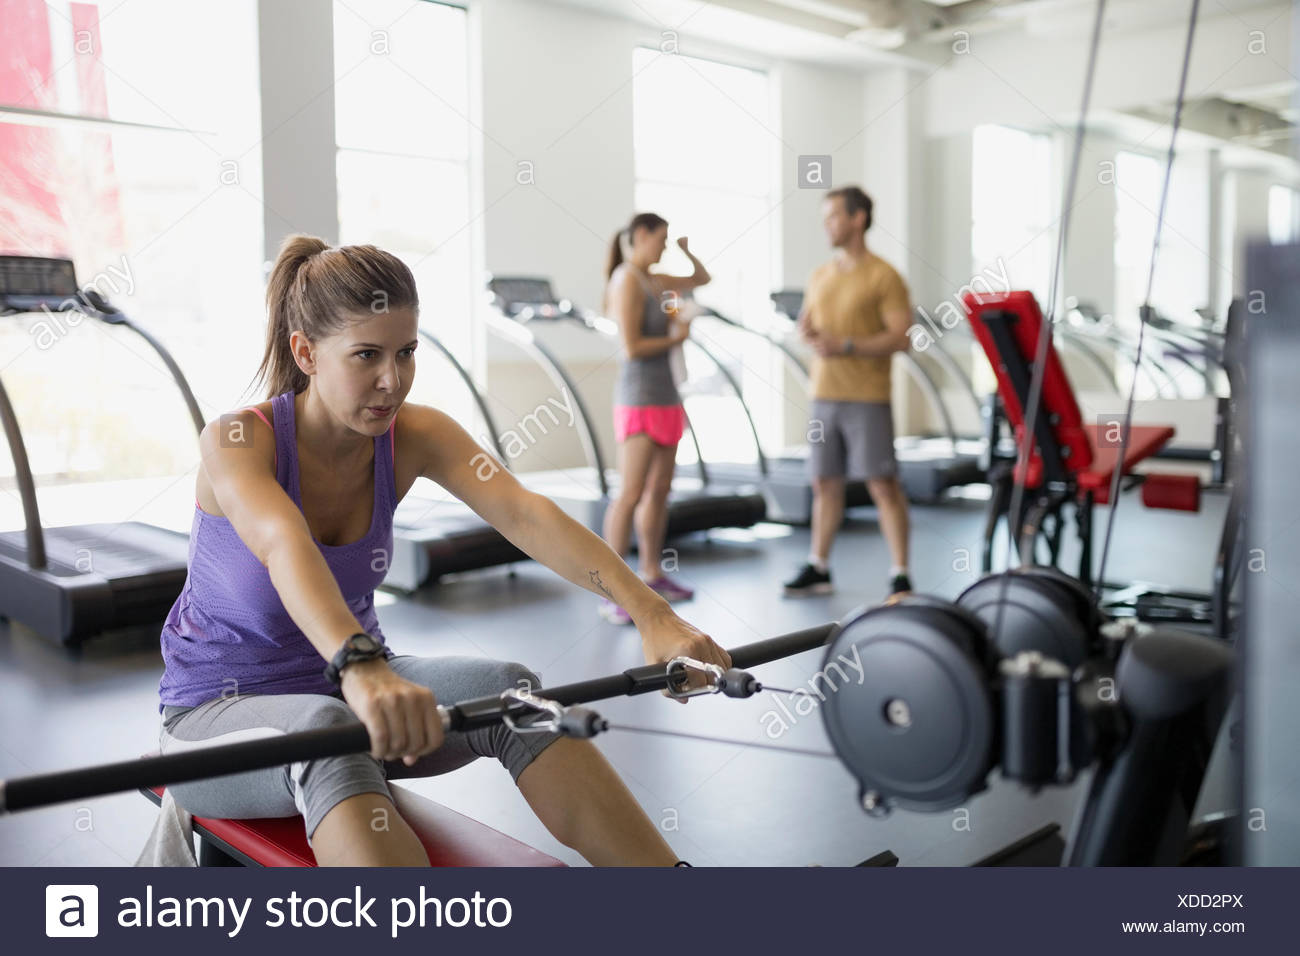 Woman doing cable rows at gym - Stock Image